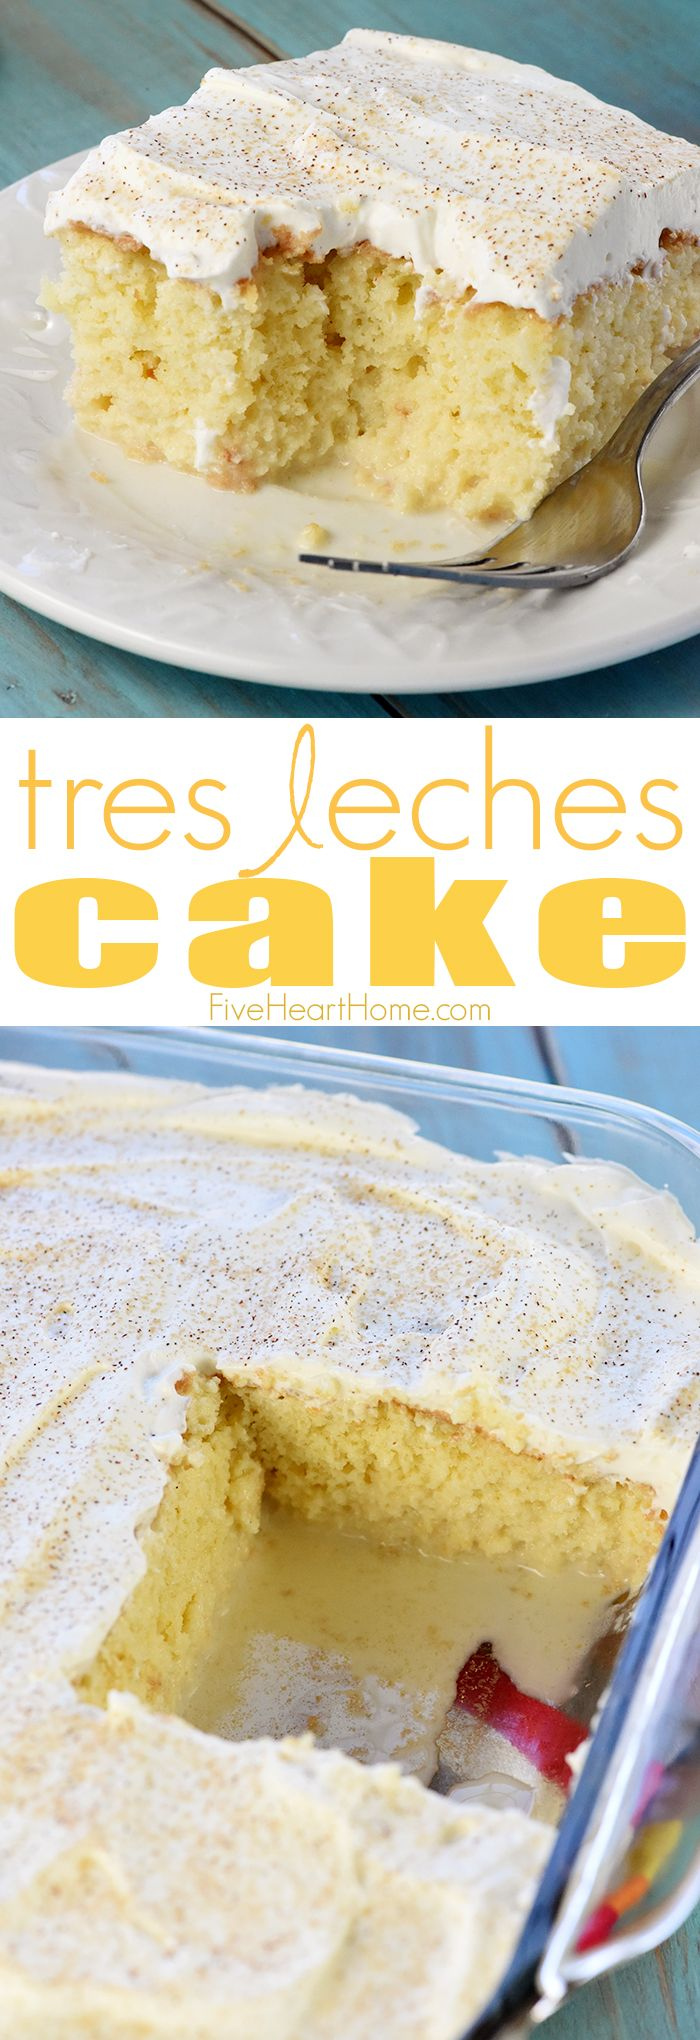 Tres Leches Cake ~ soaked with three types of milk and topped with fresh whipped cream, this sweet, moist, decadent dessert is perfect for celebrating Cinco de Mayo!   FiveHeartHome.com